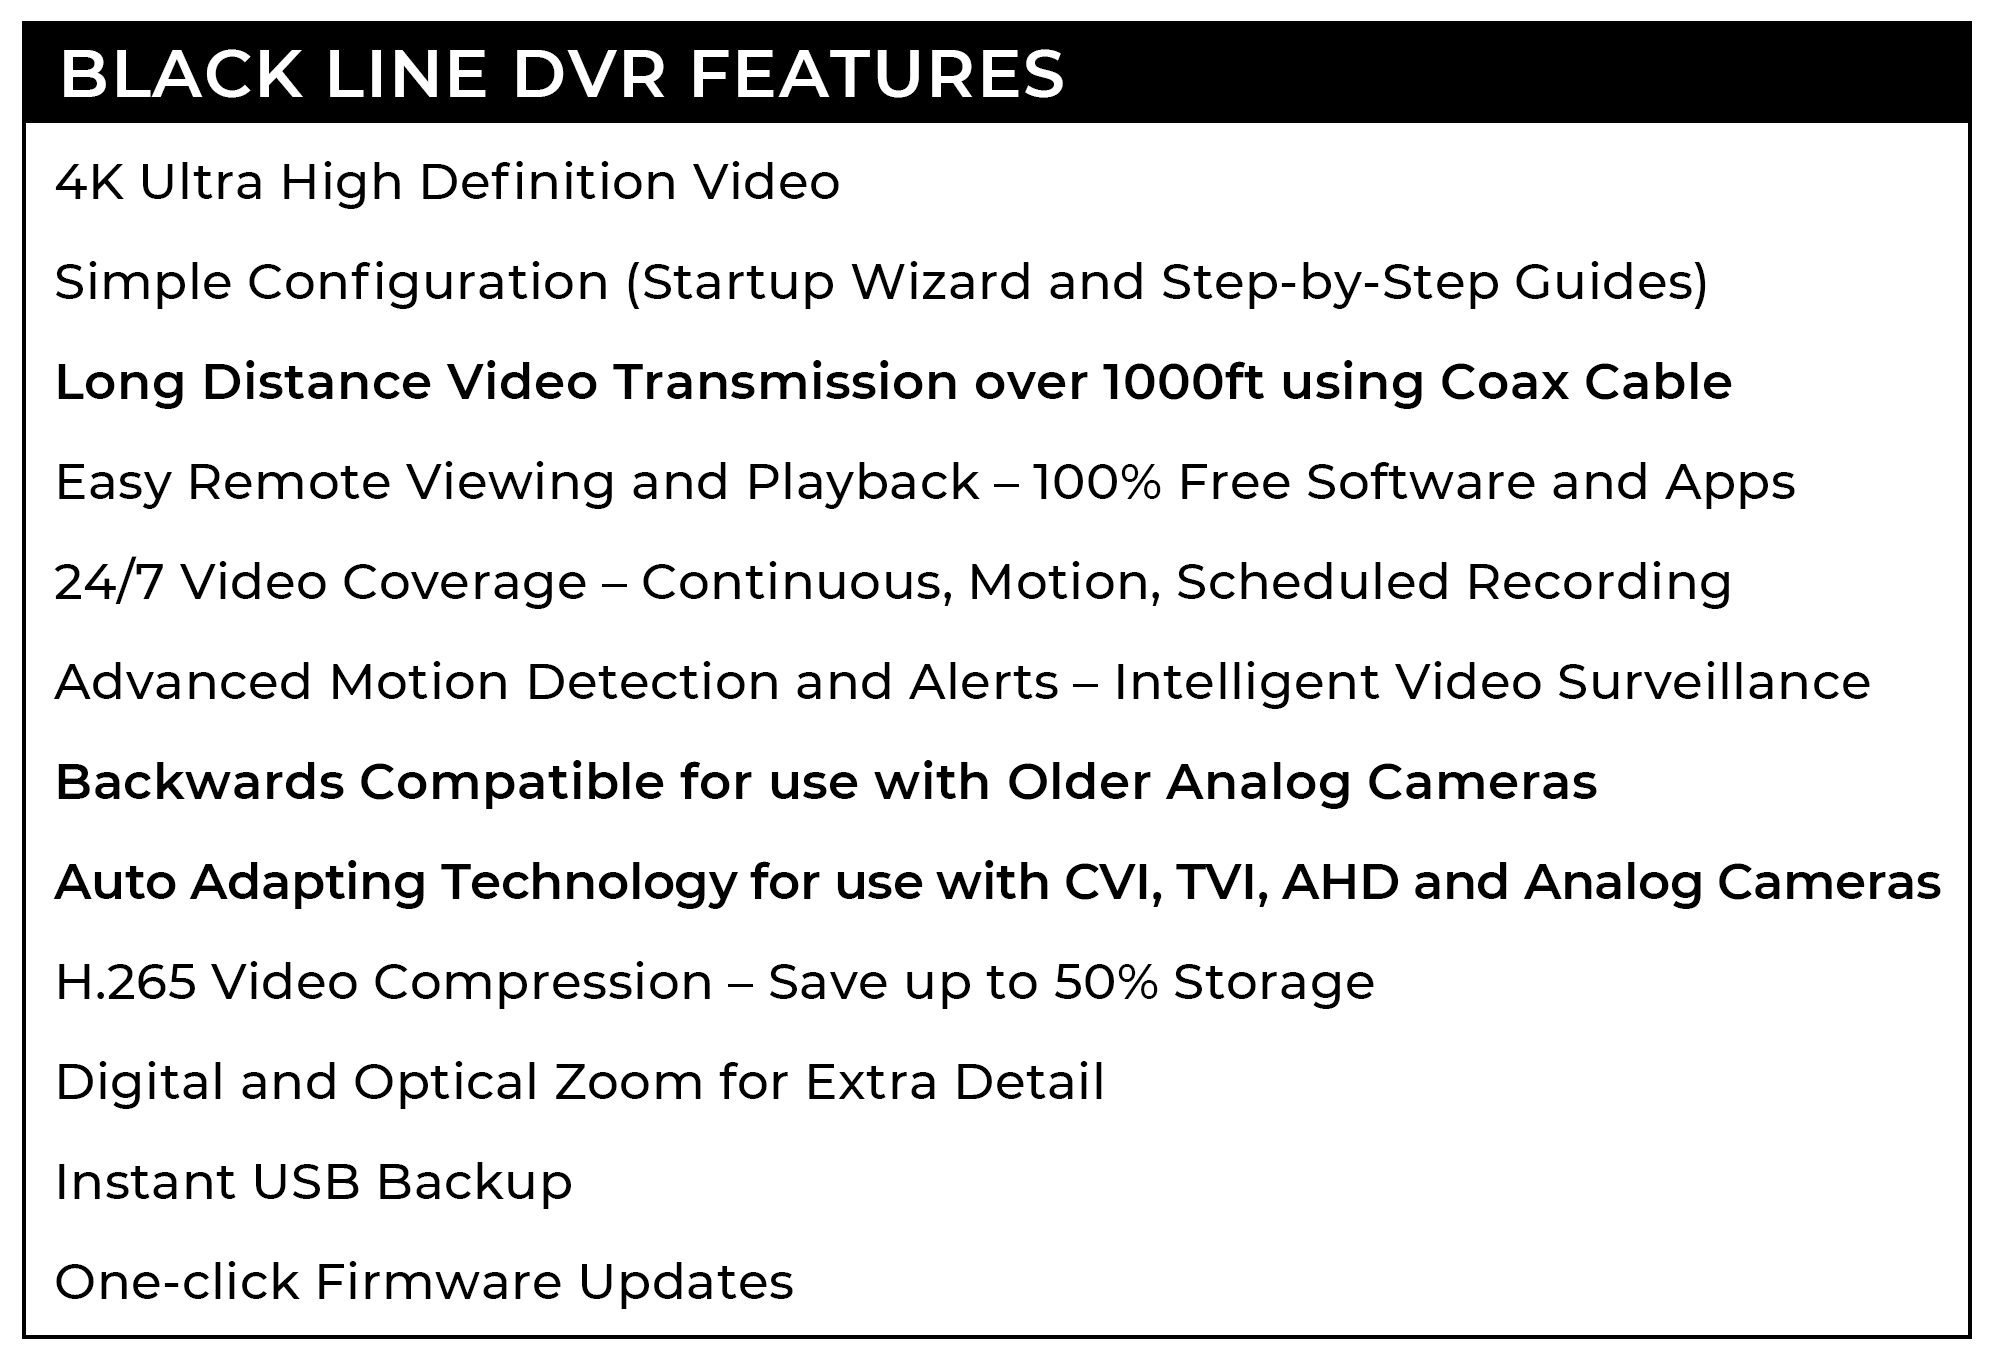 black-line-dvr-features-1-.png